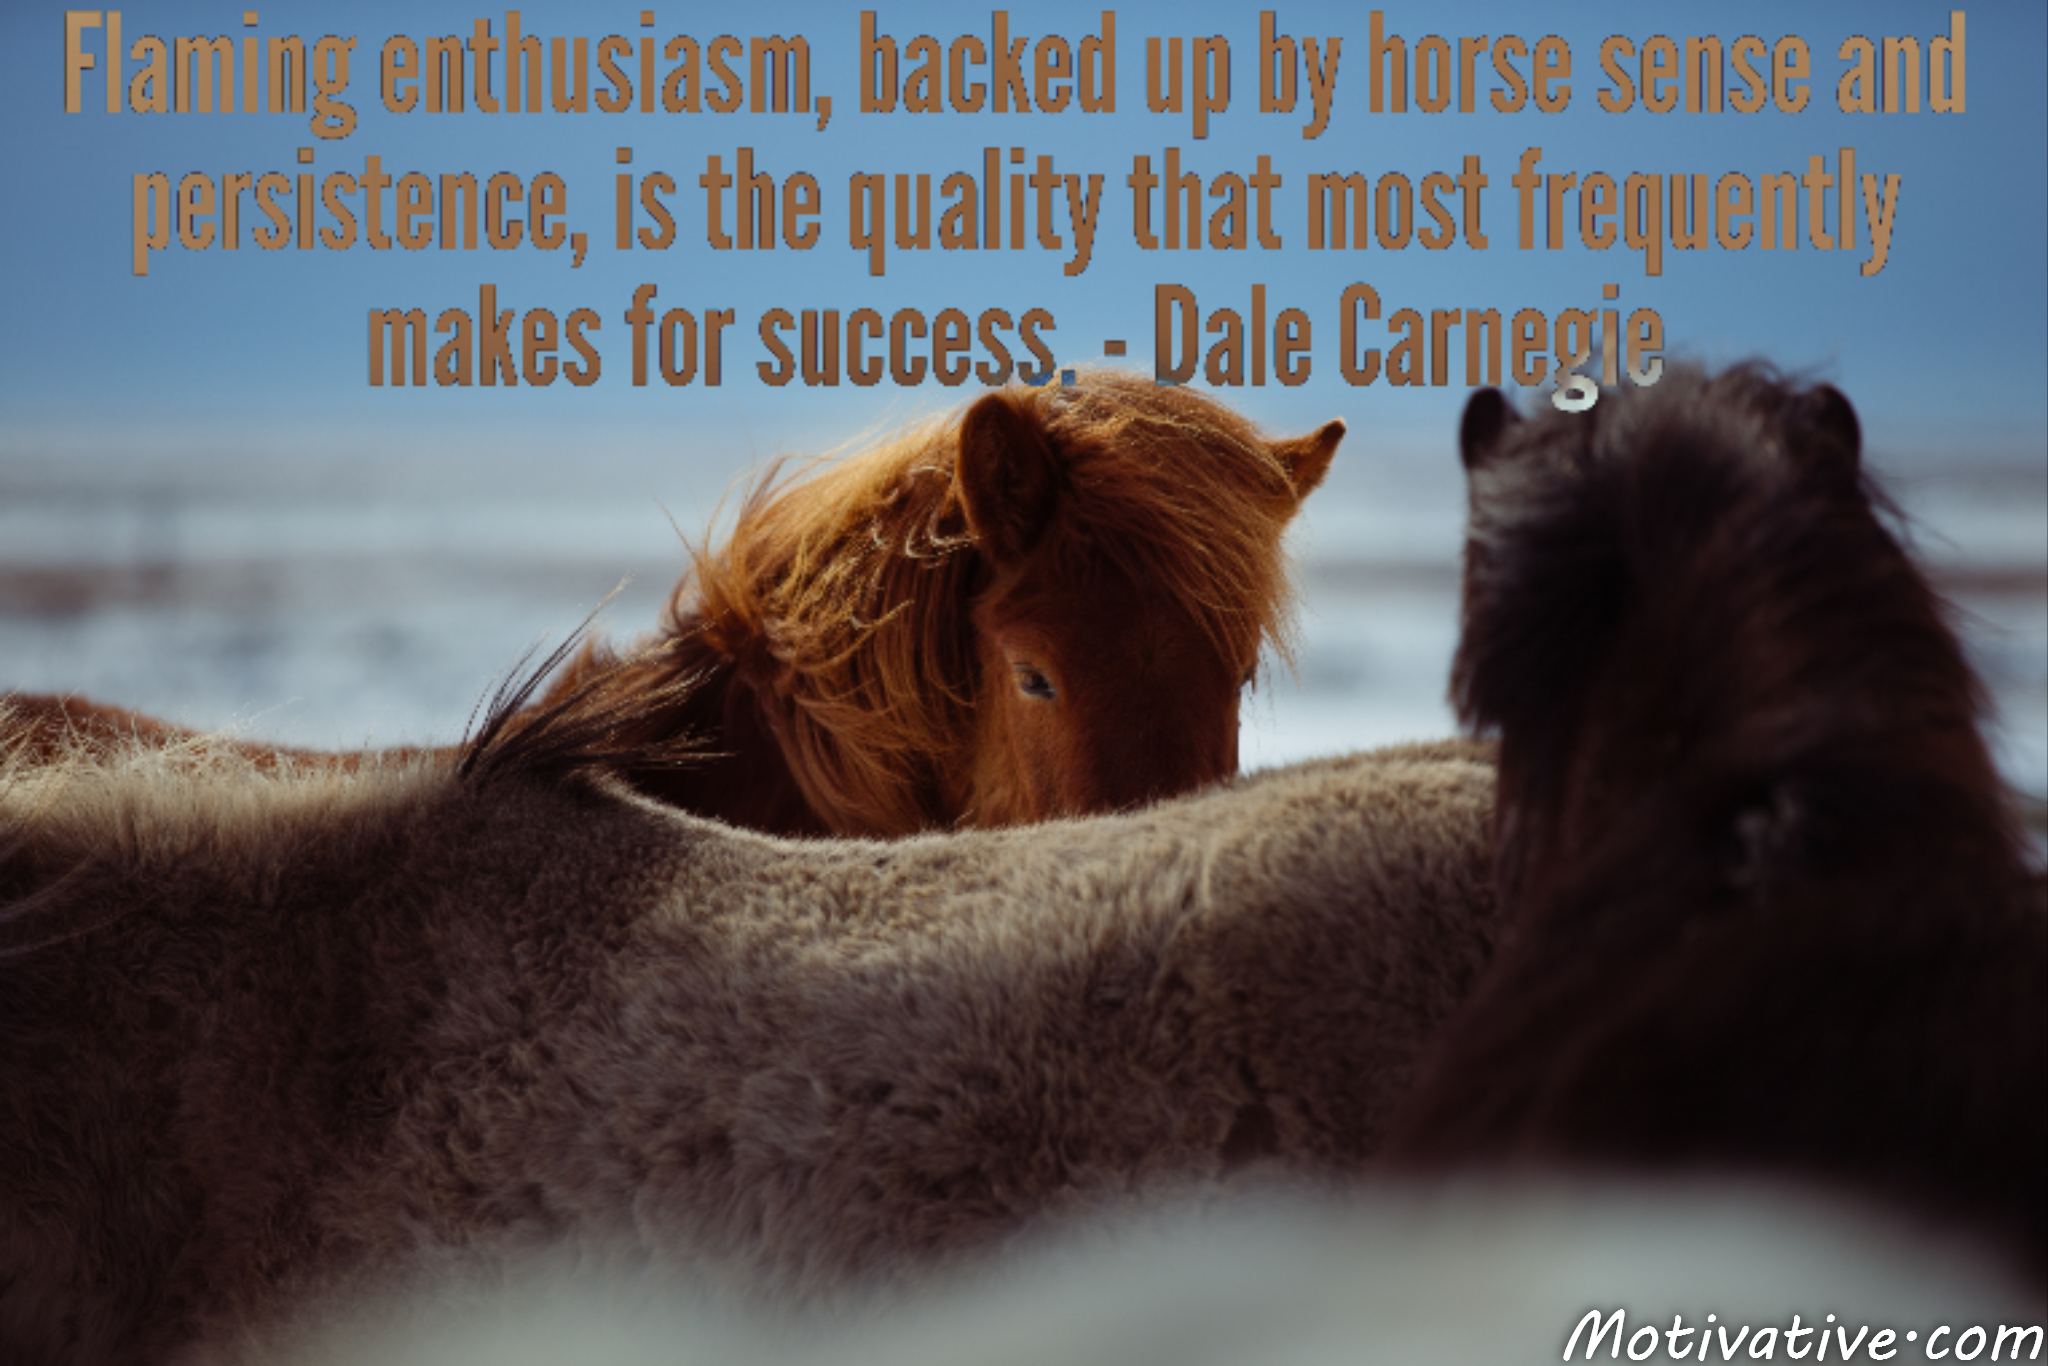 Flaming enthusiasm, backed up by horse sense and persistence, is the quality that most frequently makes for success. – Dale Carnegie